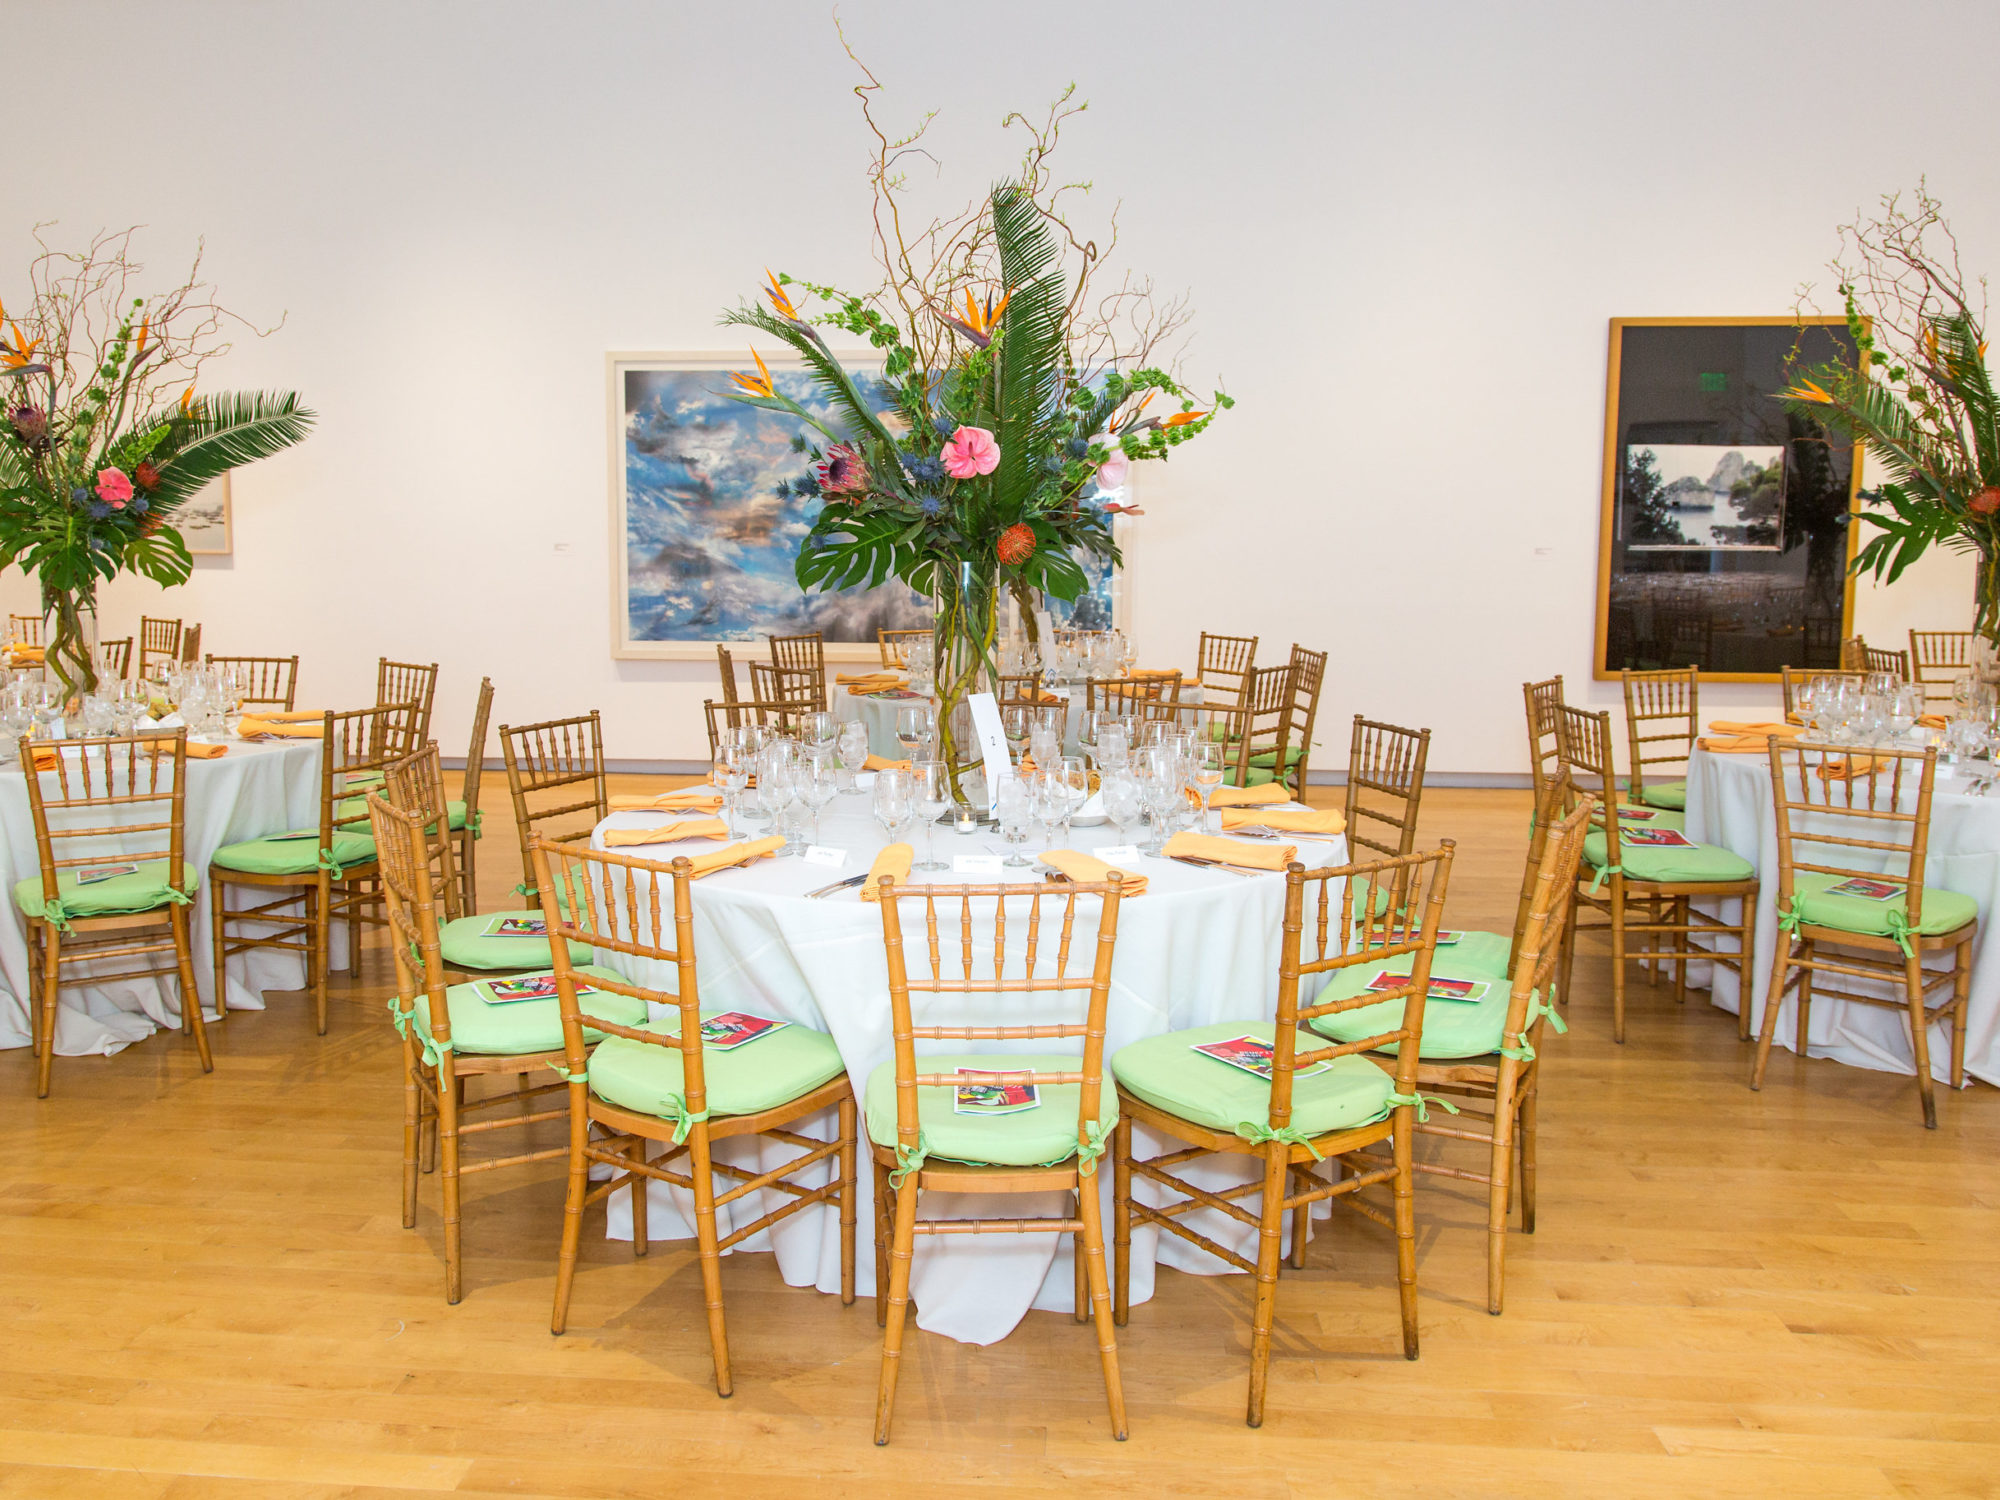 Image of tables with tall flower arrangements in gallery.